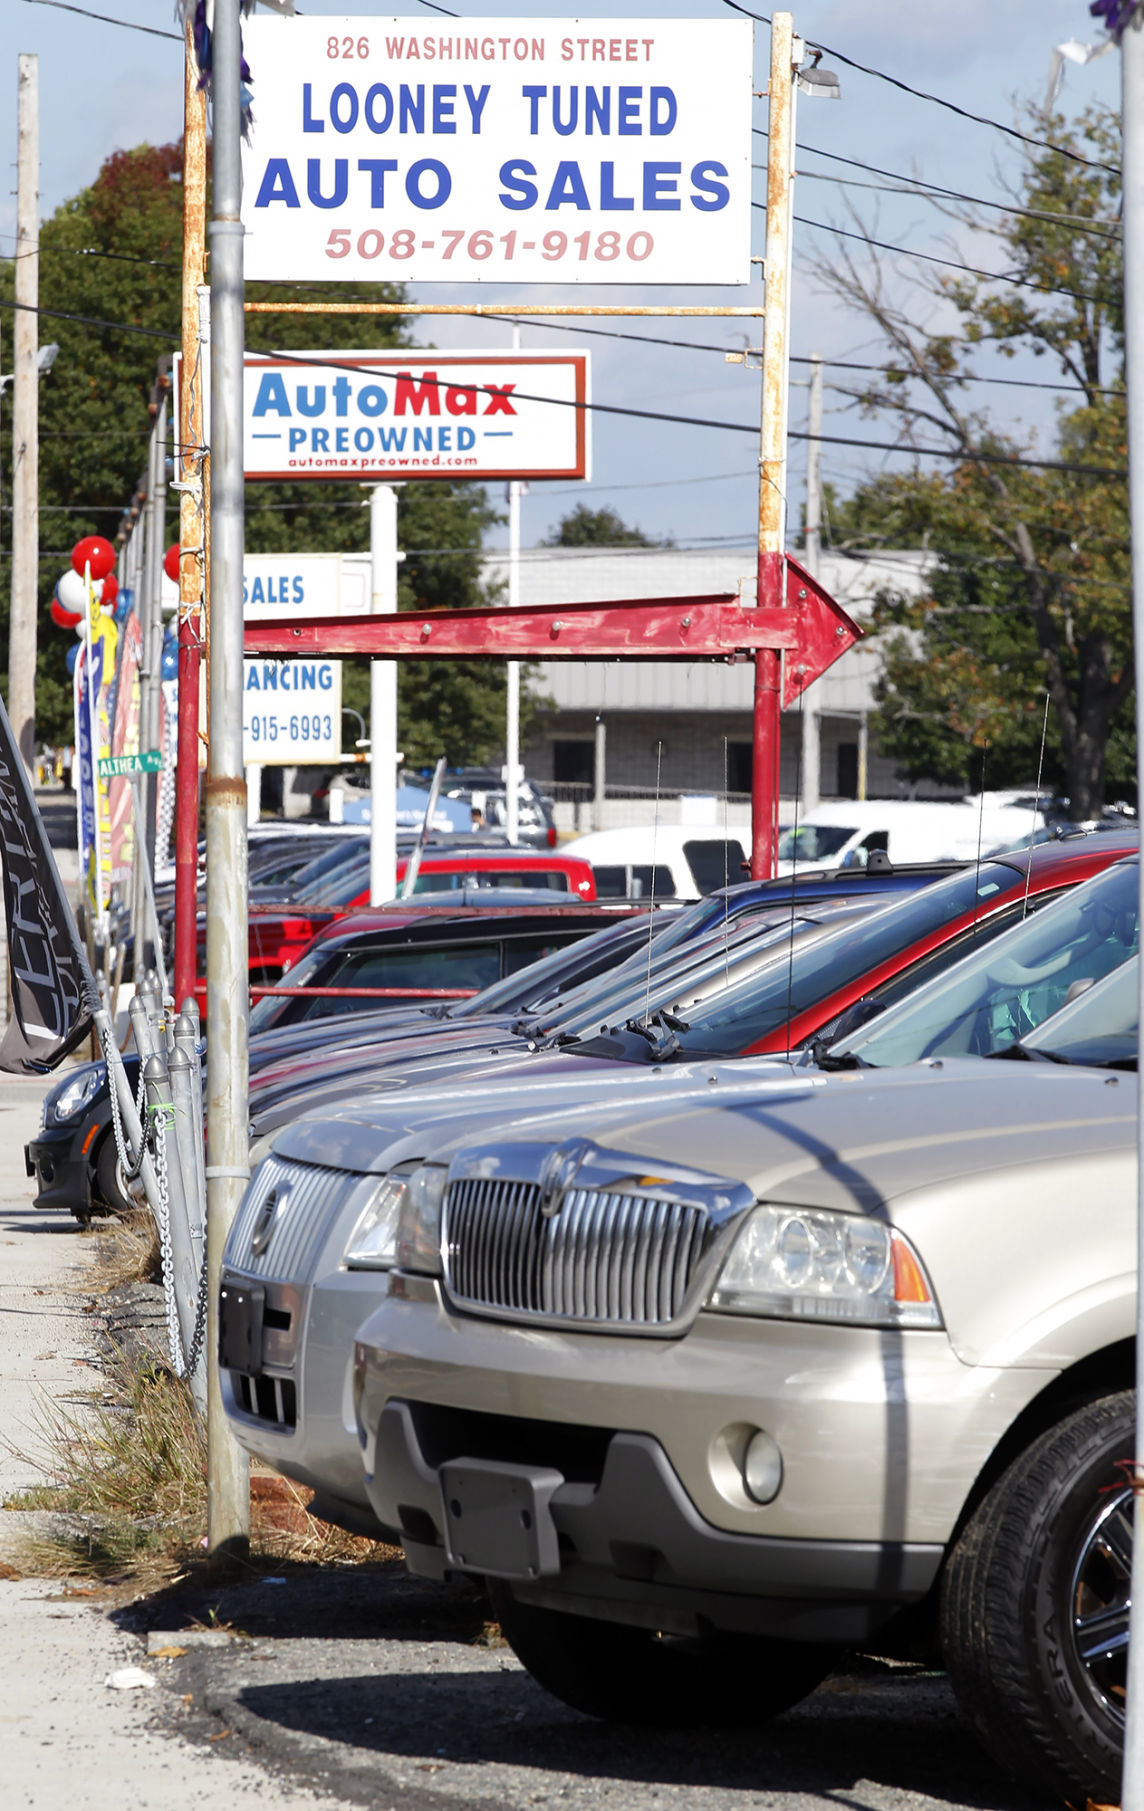 Rhodes Auto Sales >> Attleboro Used Car Dealer License In Jeopardy Local News